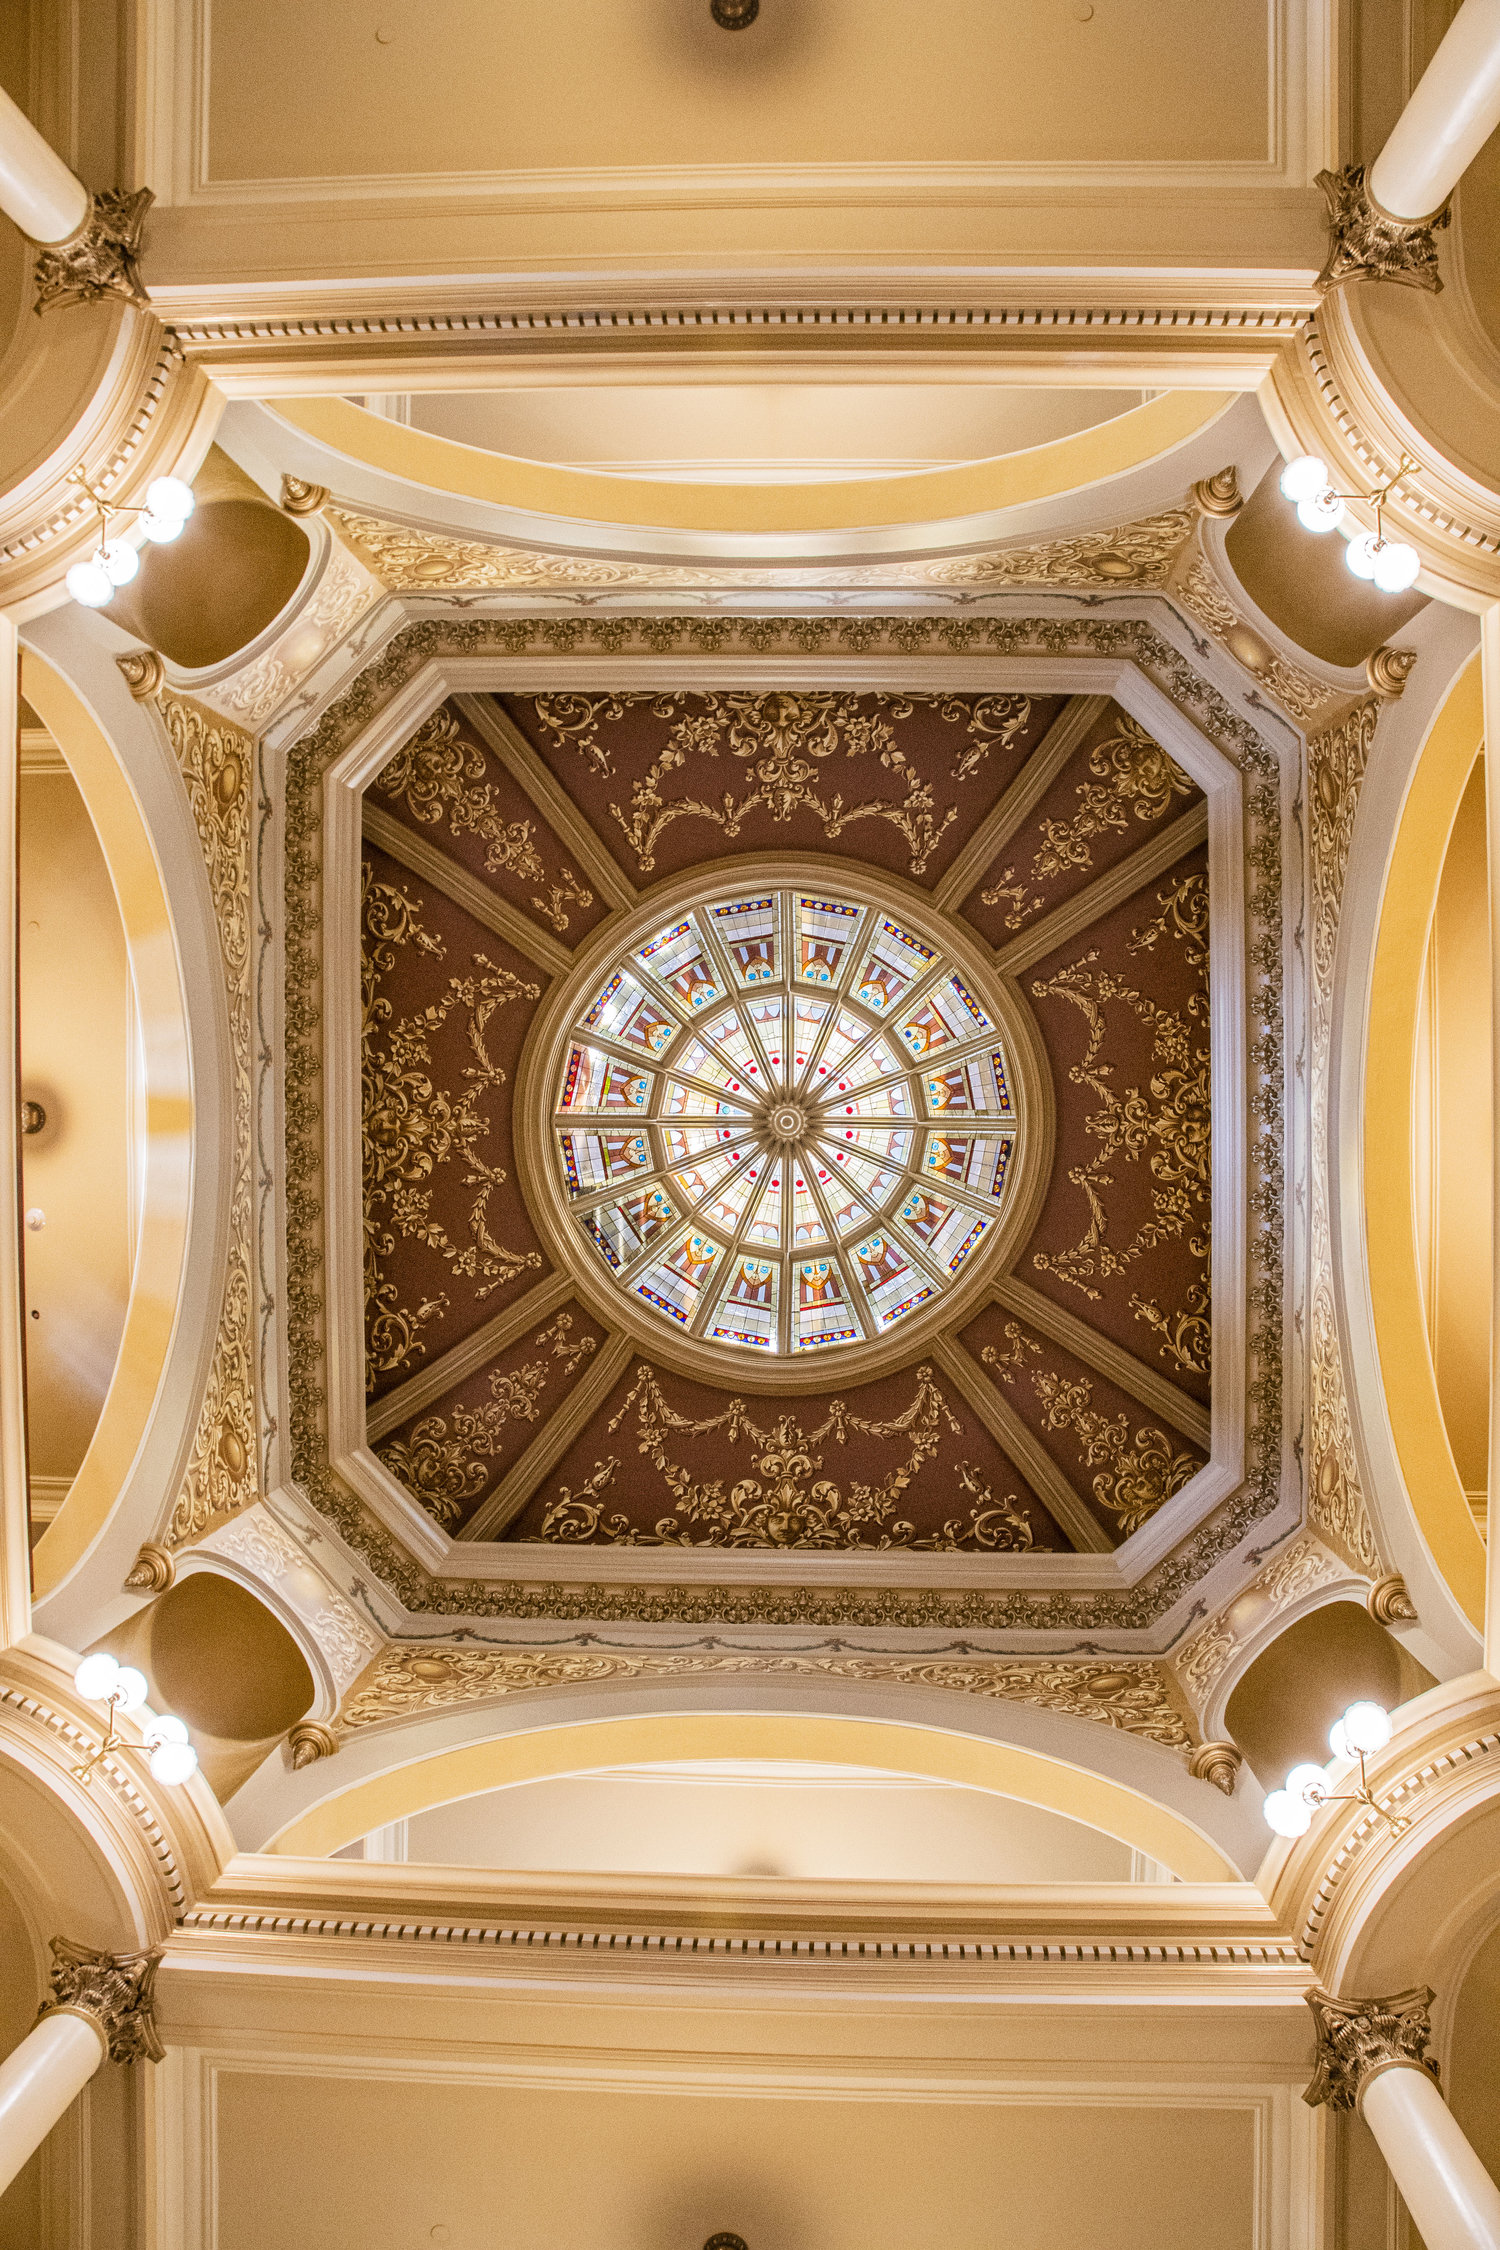 Schedule of Events for July 10 Capitol Square Open House and